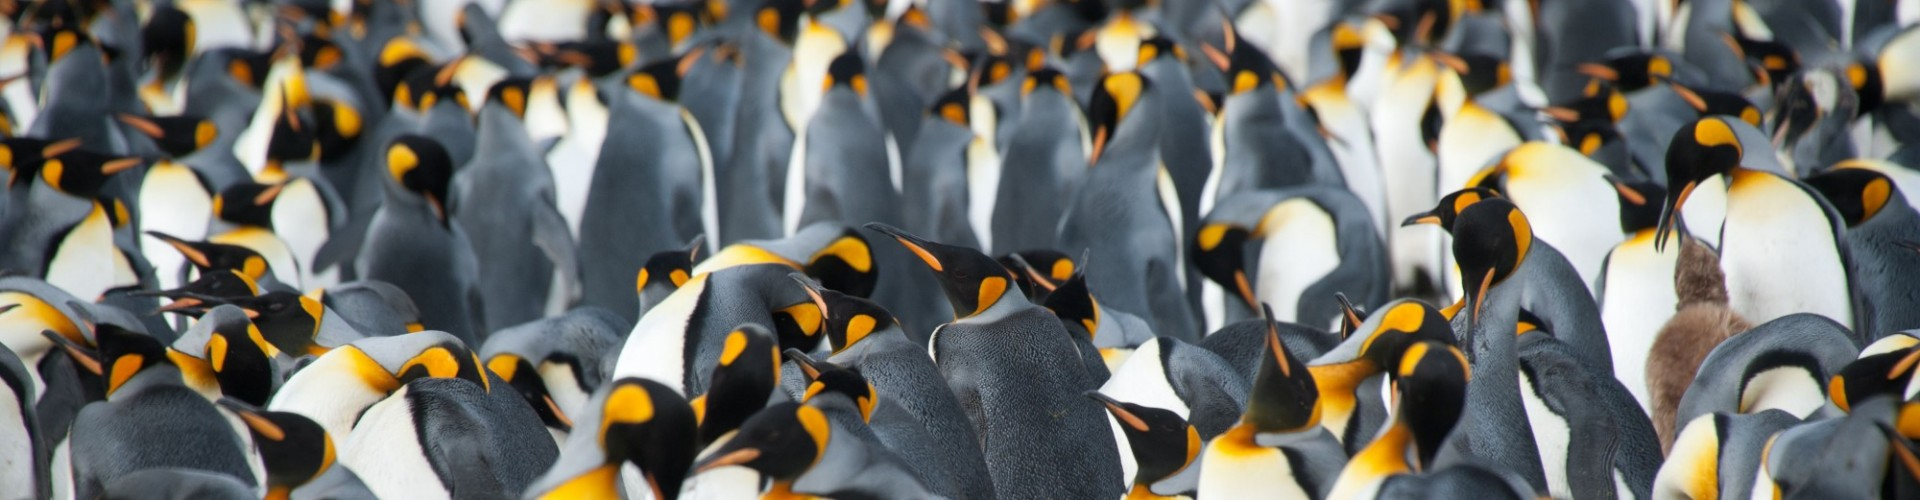 Antarctica - South Georgia - Oceanwide - Thousands of King Penguins by Erwin Vermeulen